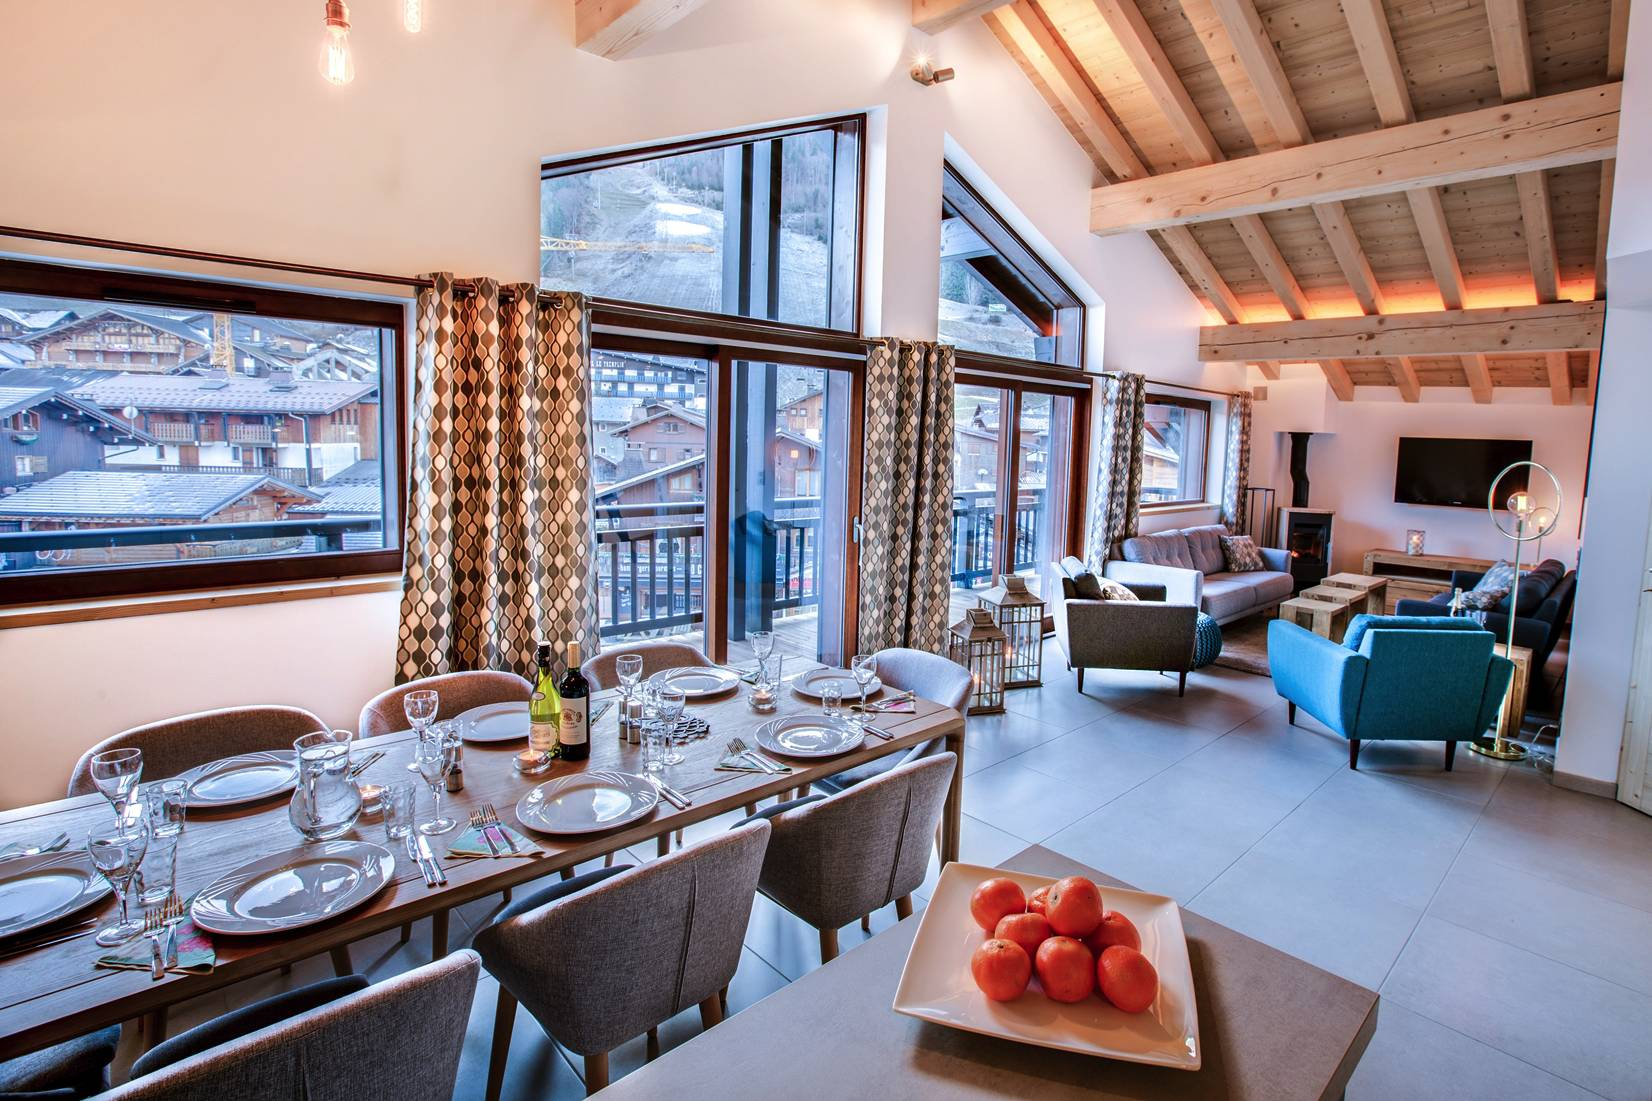 Be Chouette chalet chouette (winter), new central morzine chalet - reach4thealps